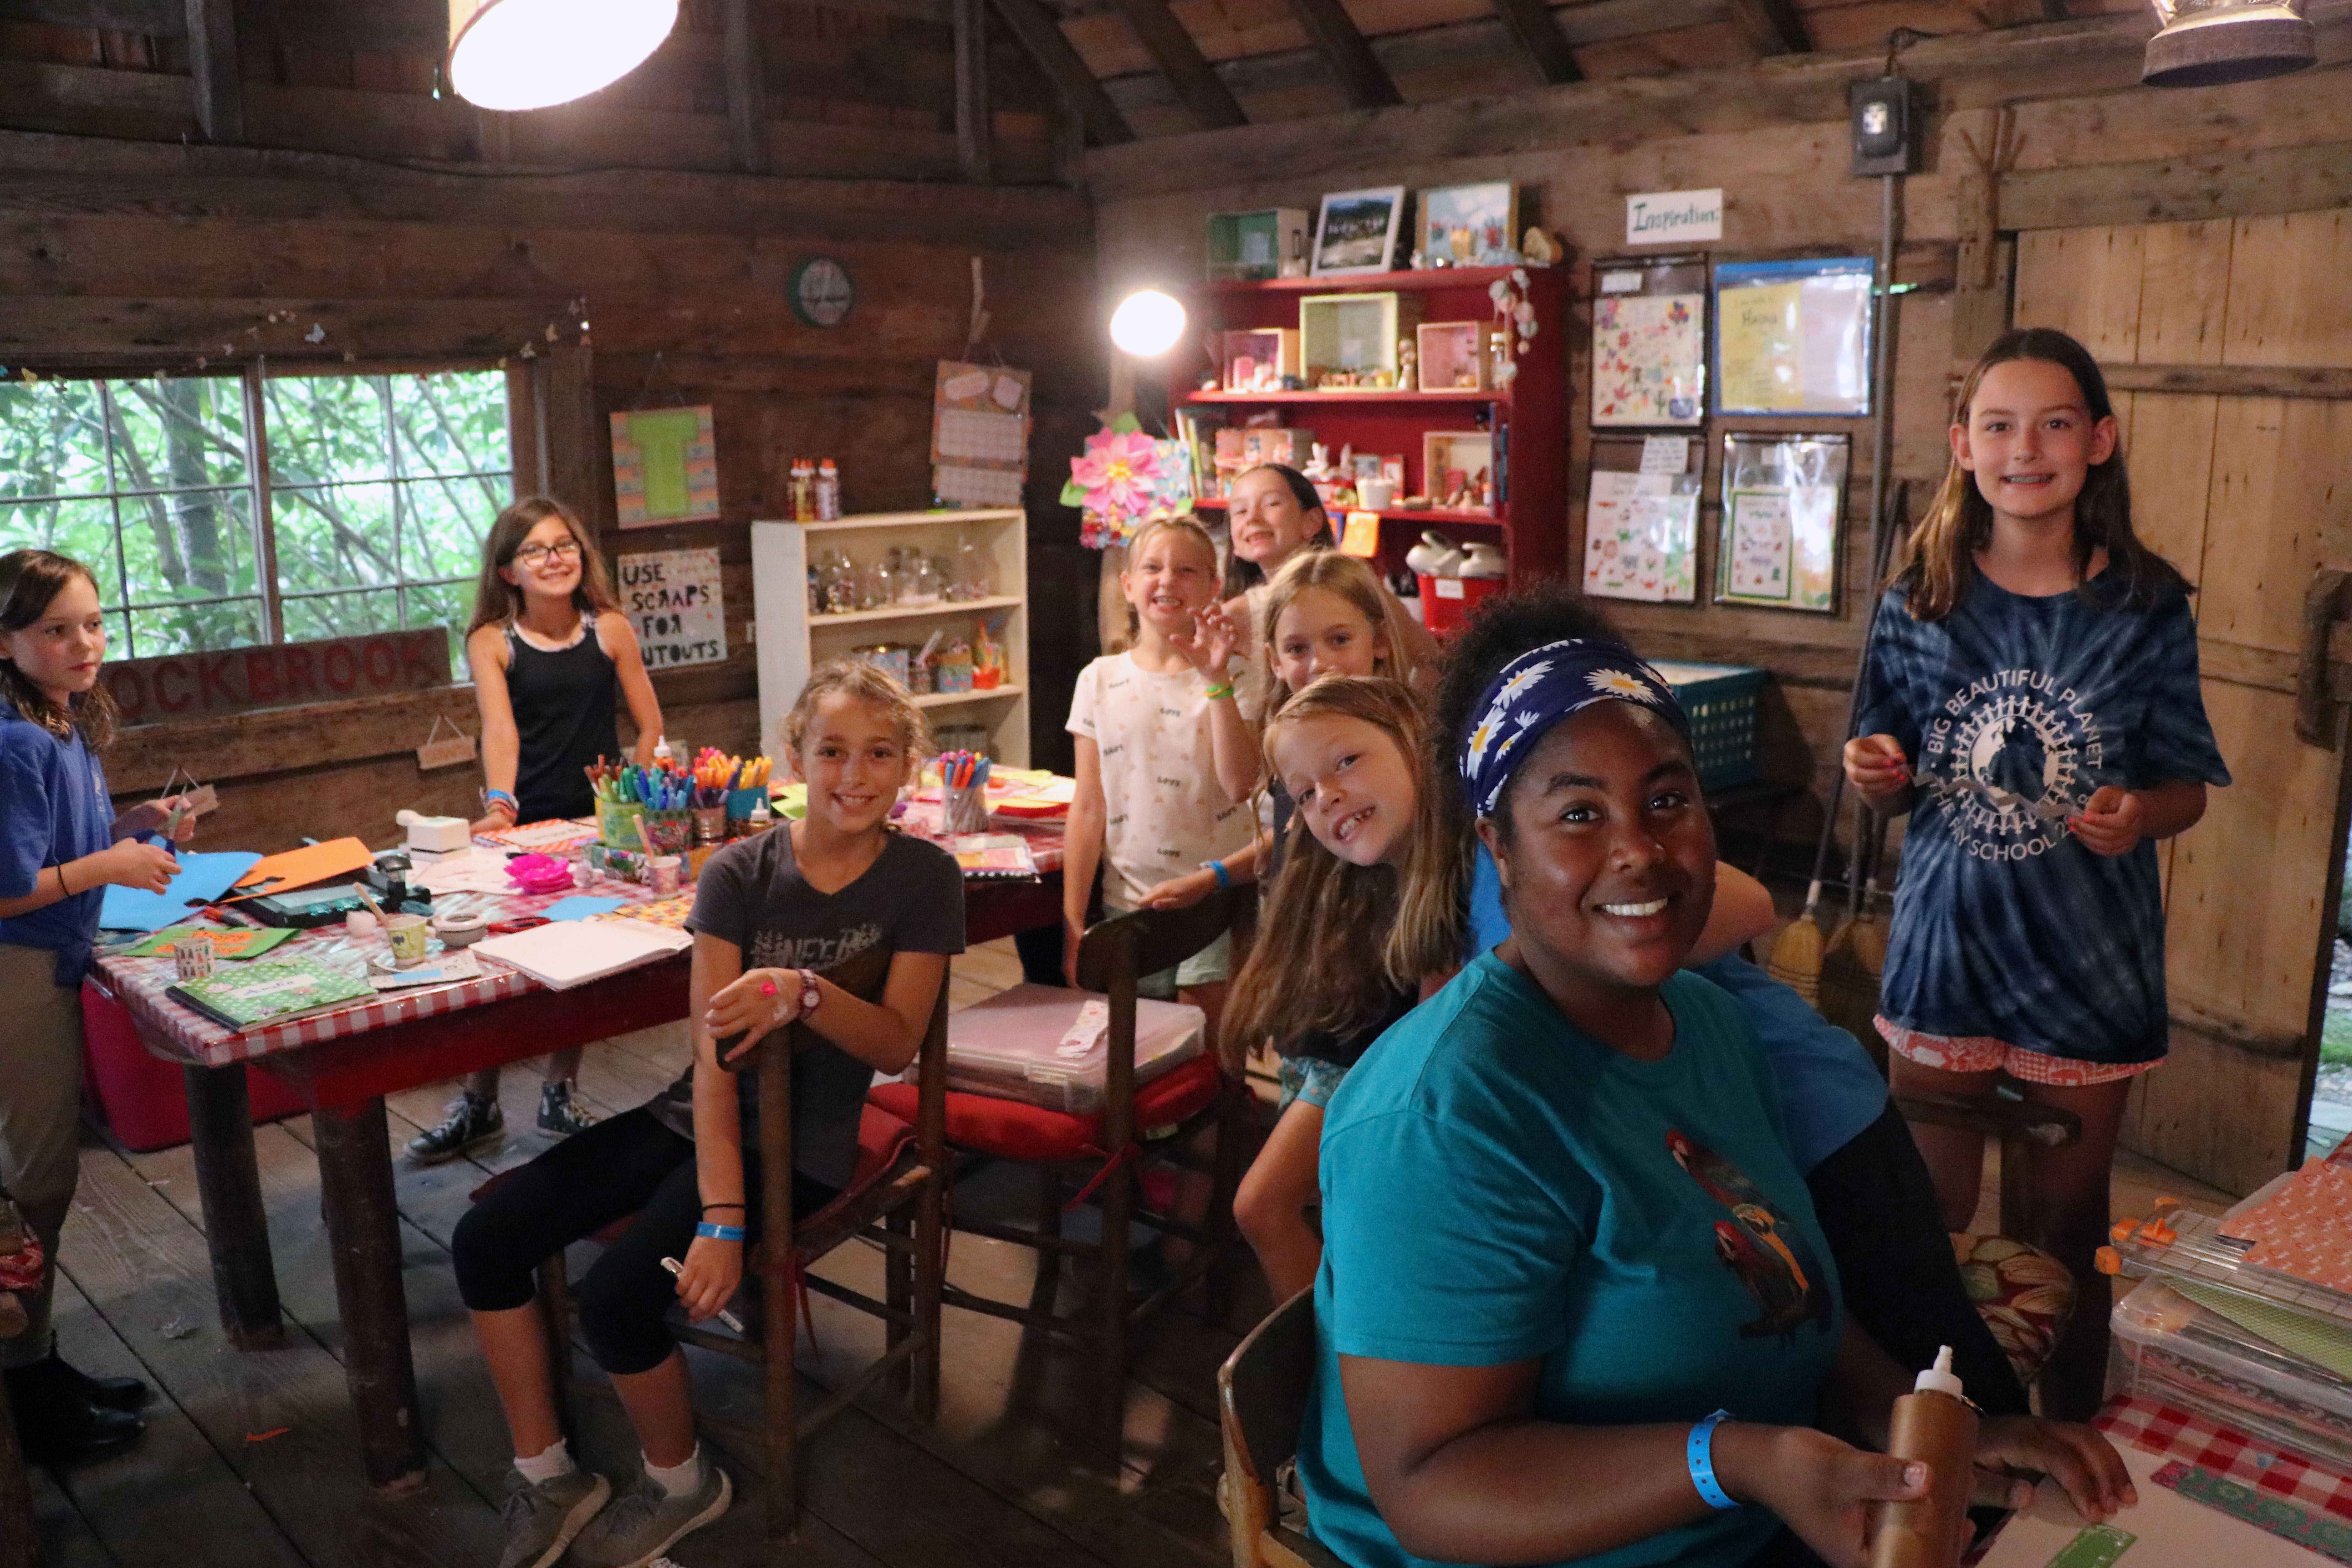 Girls in arts and crafts cabin